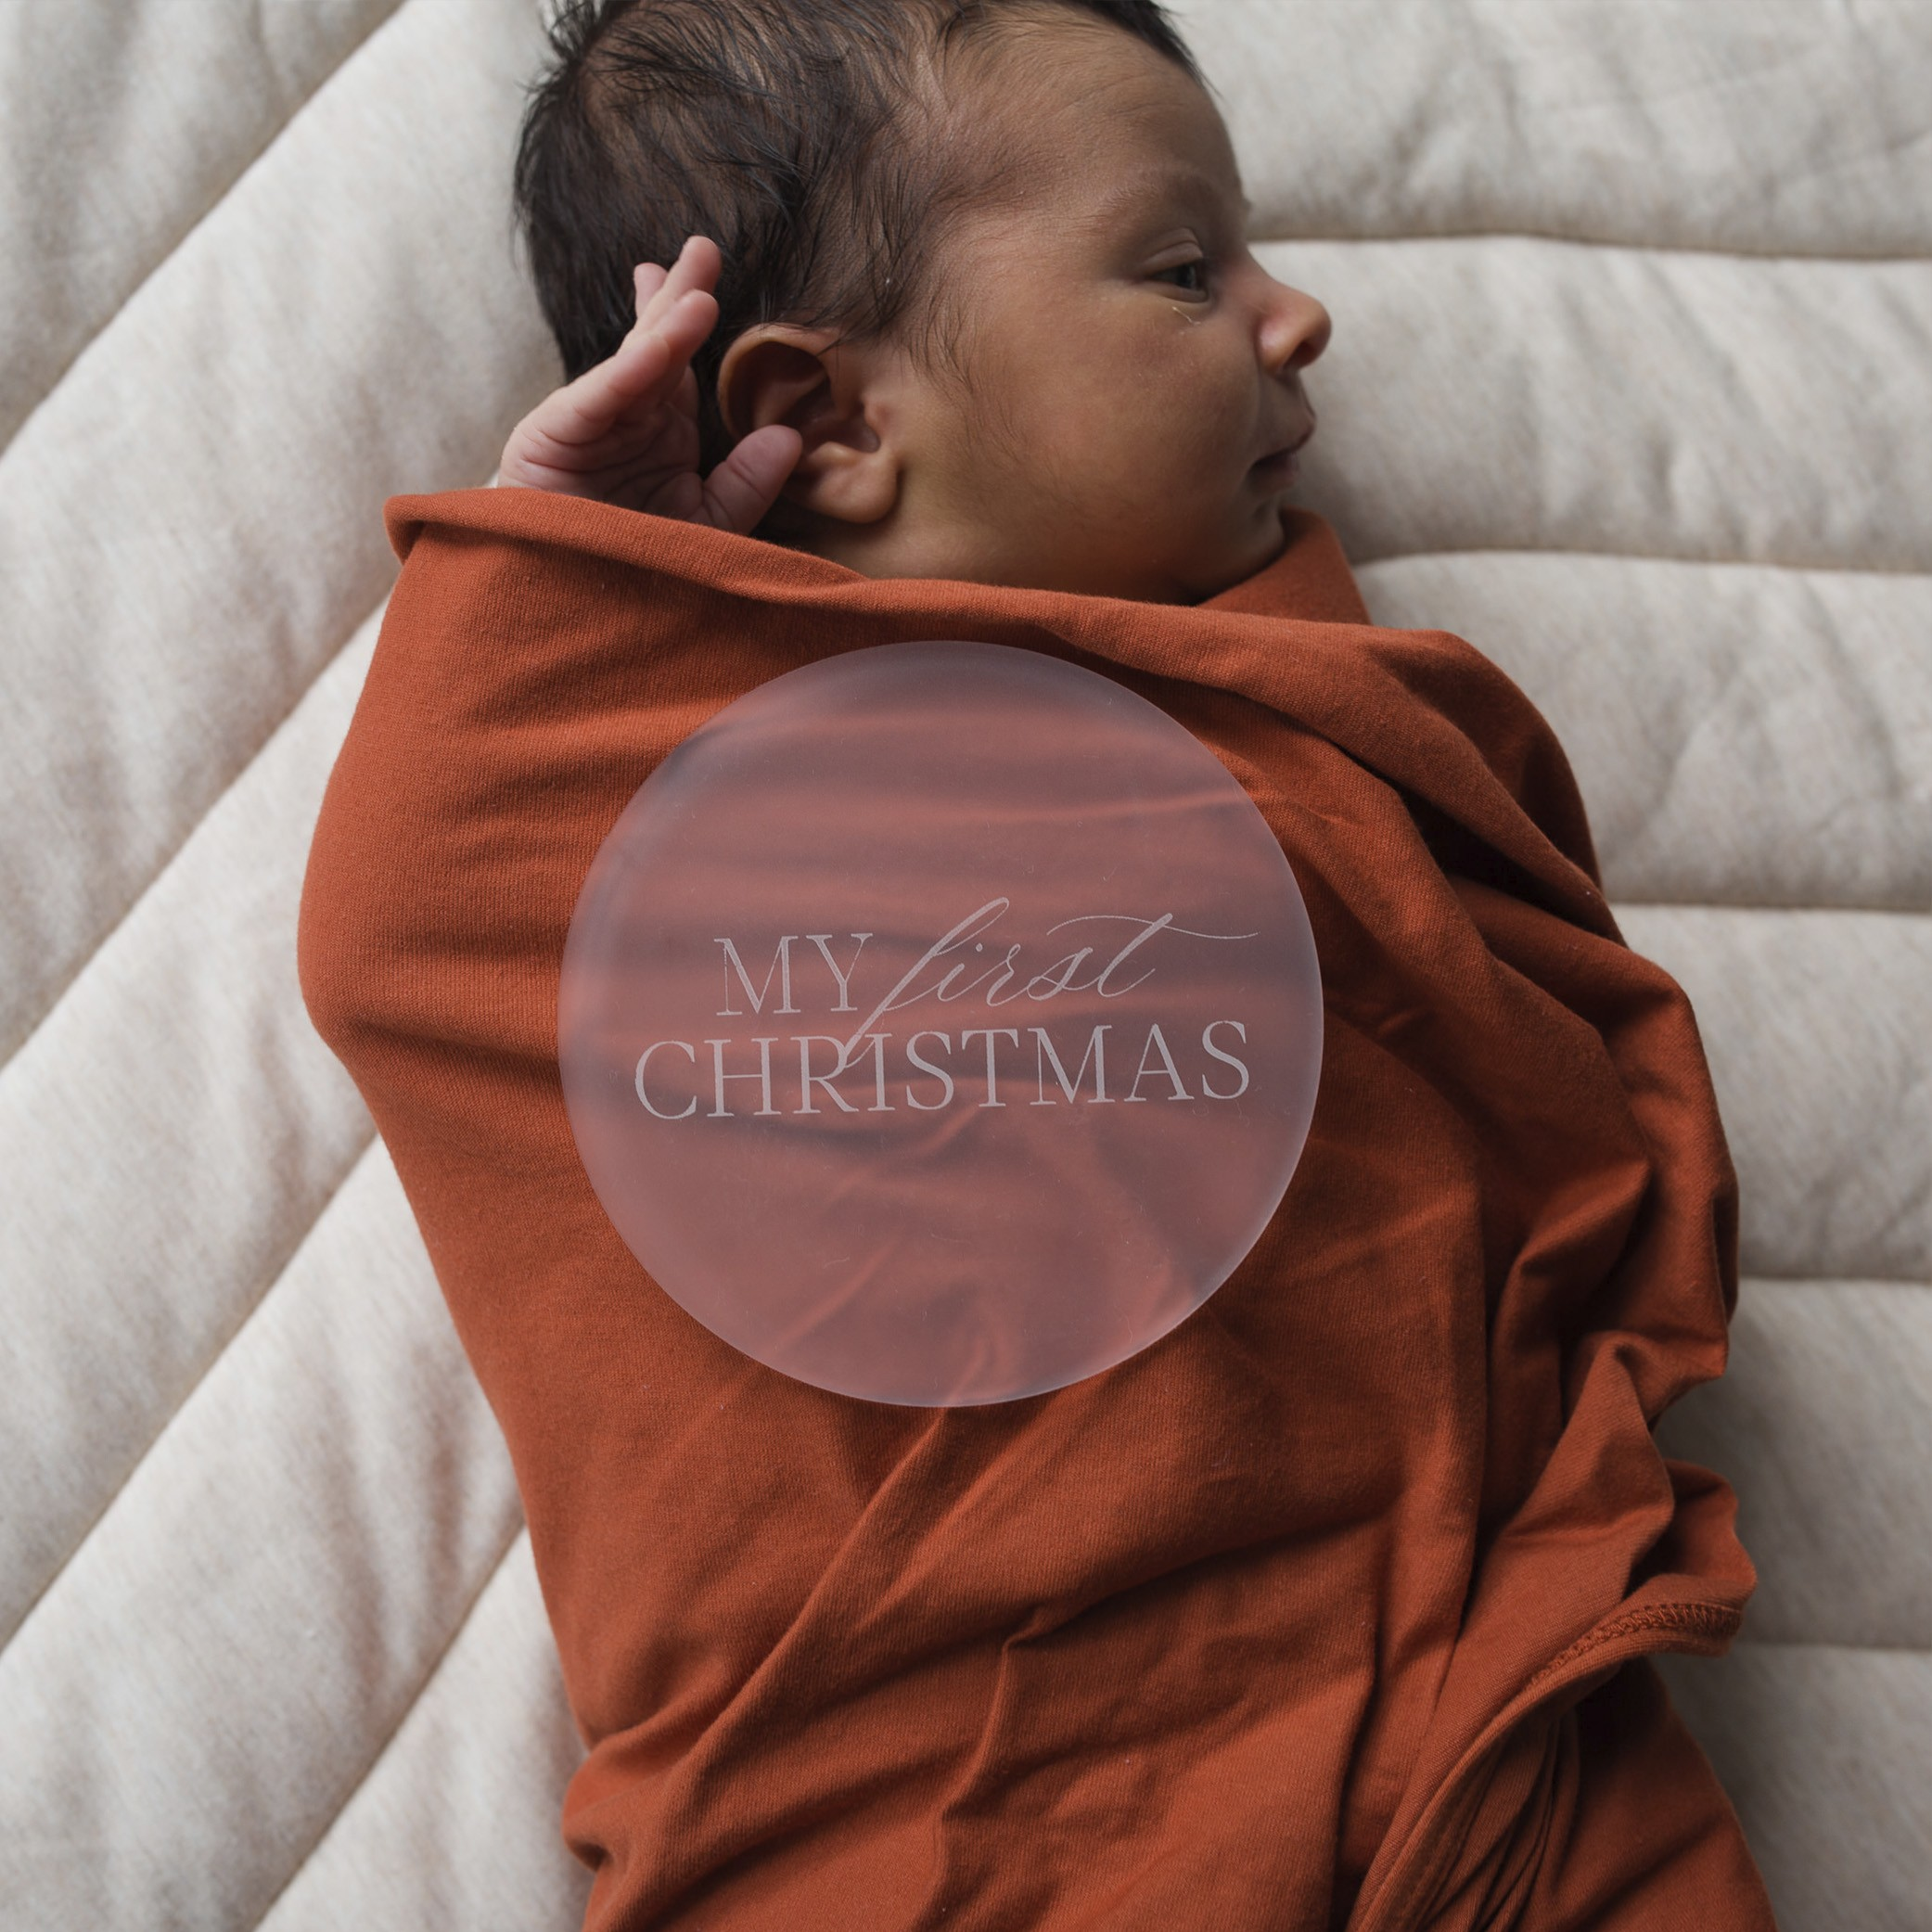 CHRISTMAS - My First Christmas | Frosted acrylic Milestone Plates